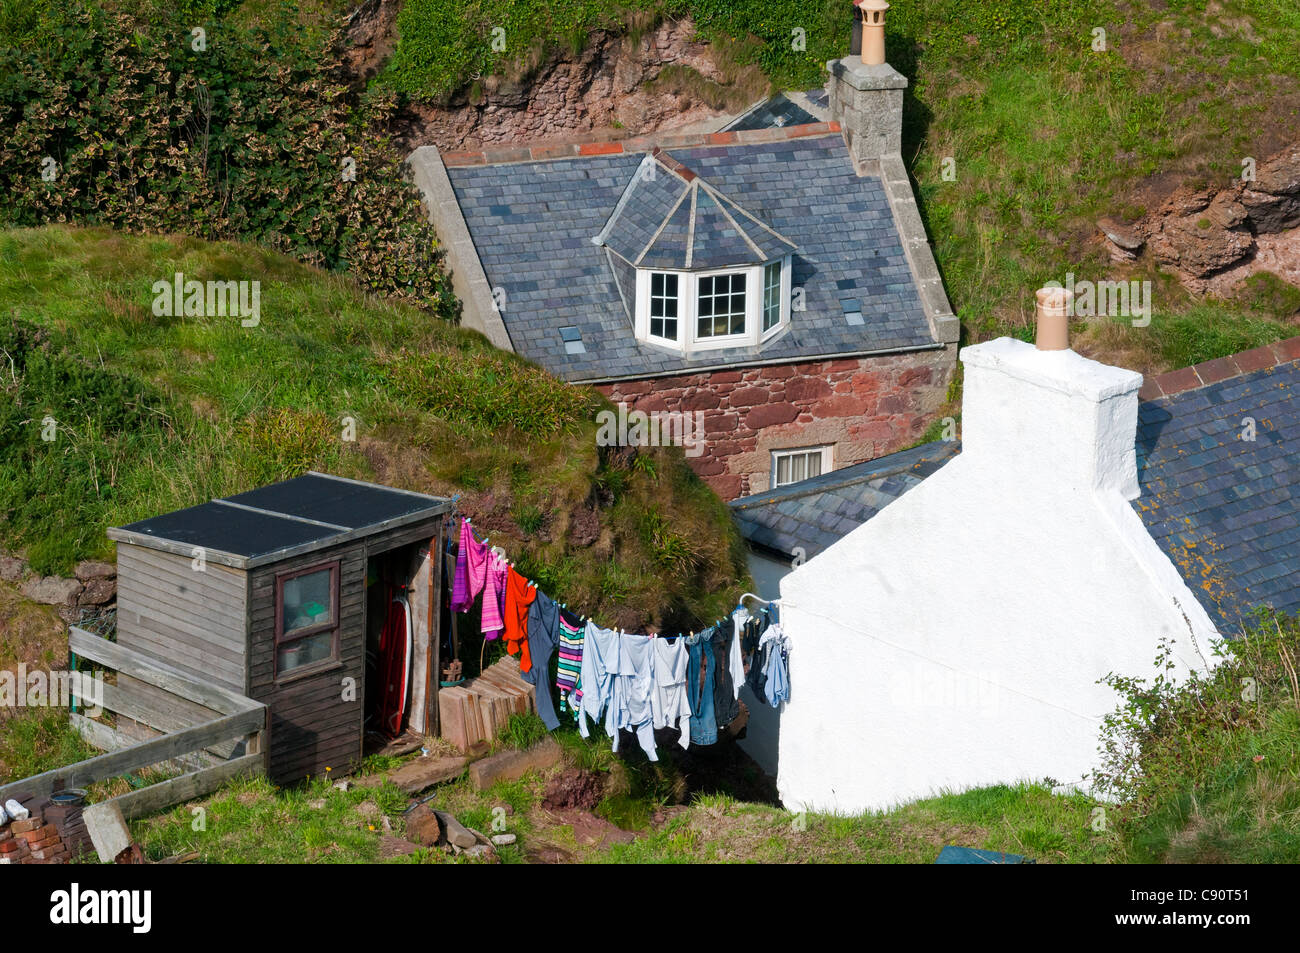 Washing hung up on the line, village of Penang, Aberdeenshire, Scotland - Stock Image